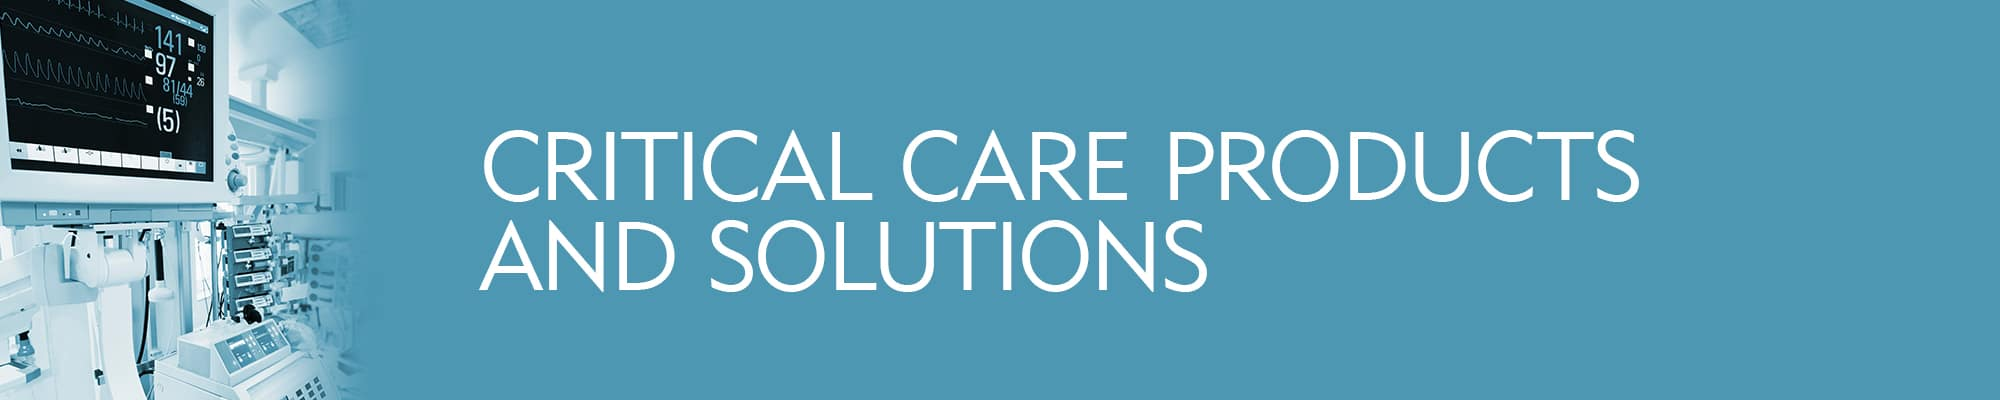 Critical Care Solutions & Products - Merit Medical